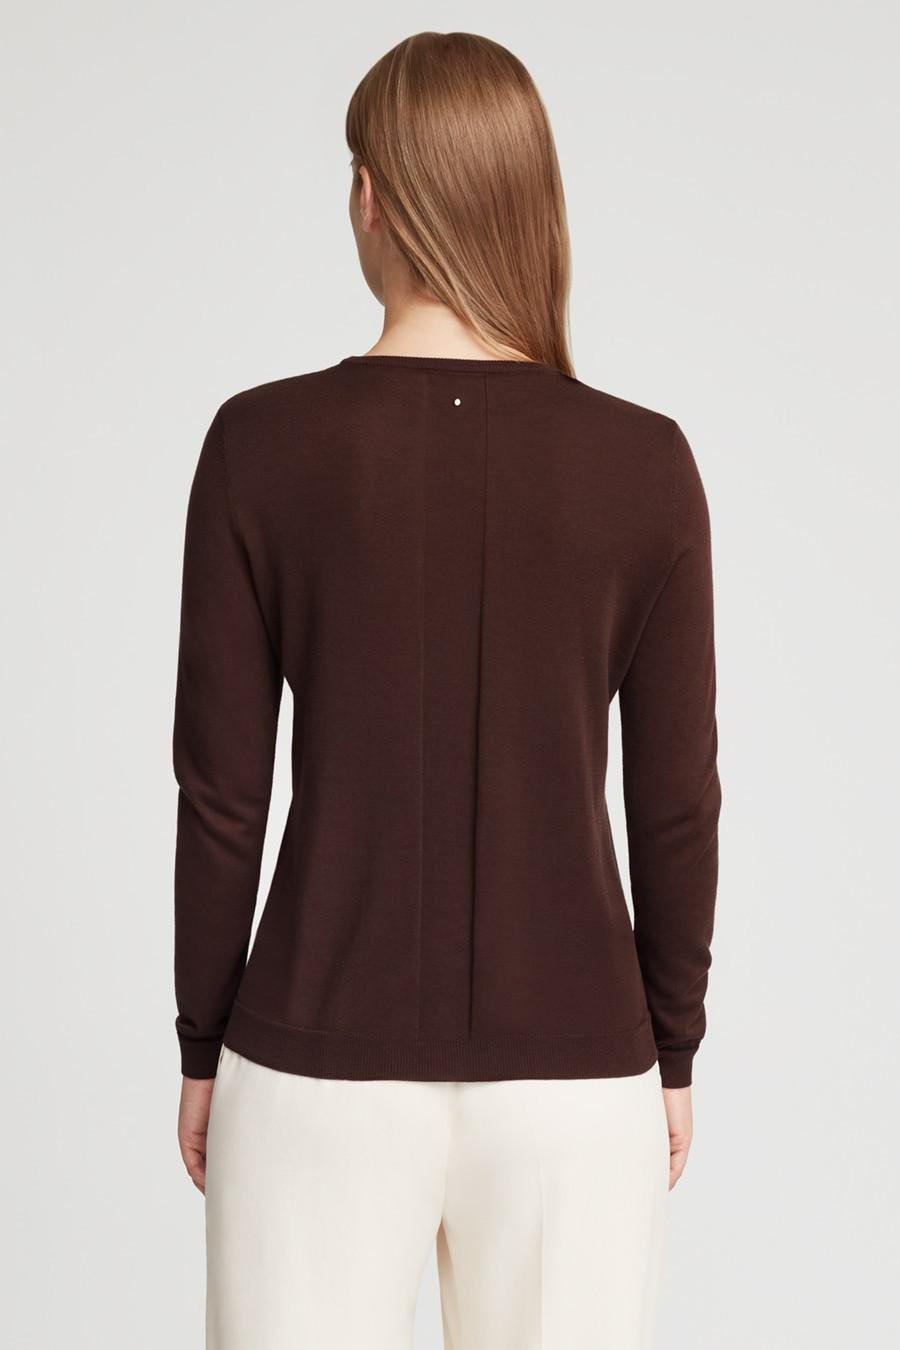 Women's Classic Cotton Cashmere Crewneck Sweater in Chocolate | Size: 2